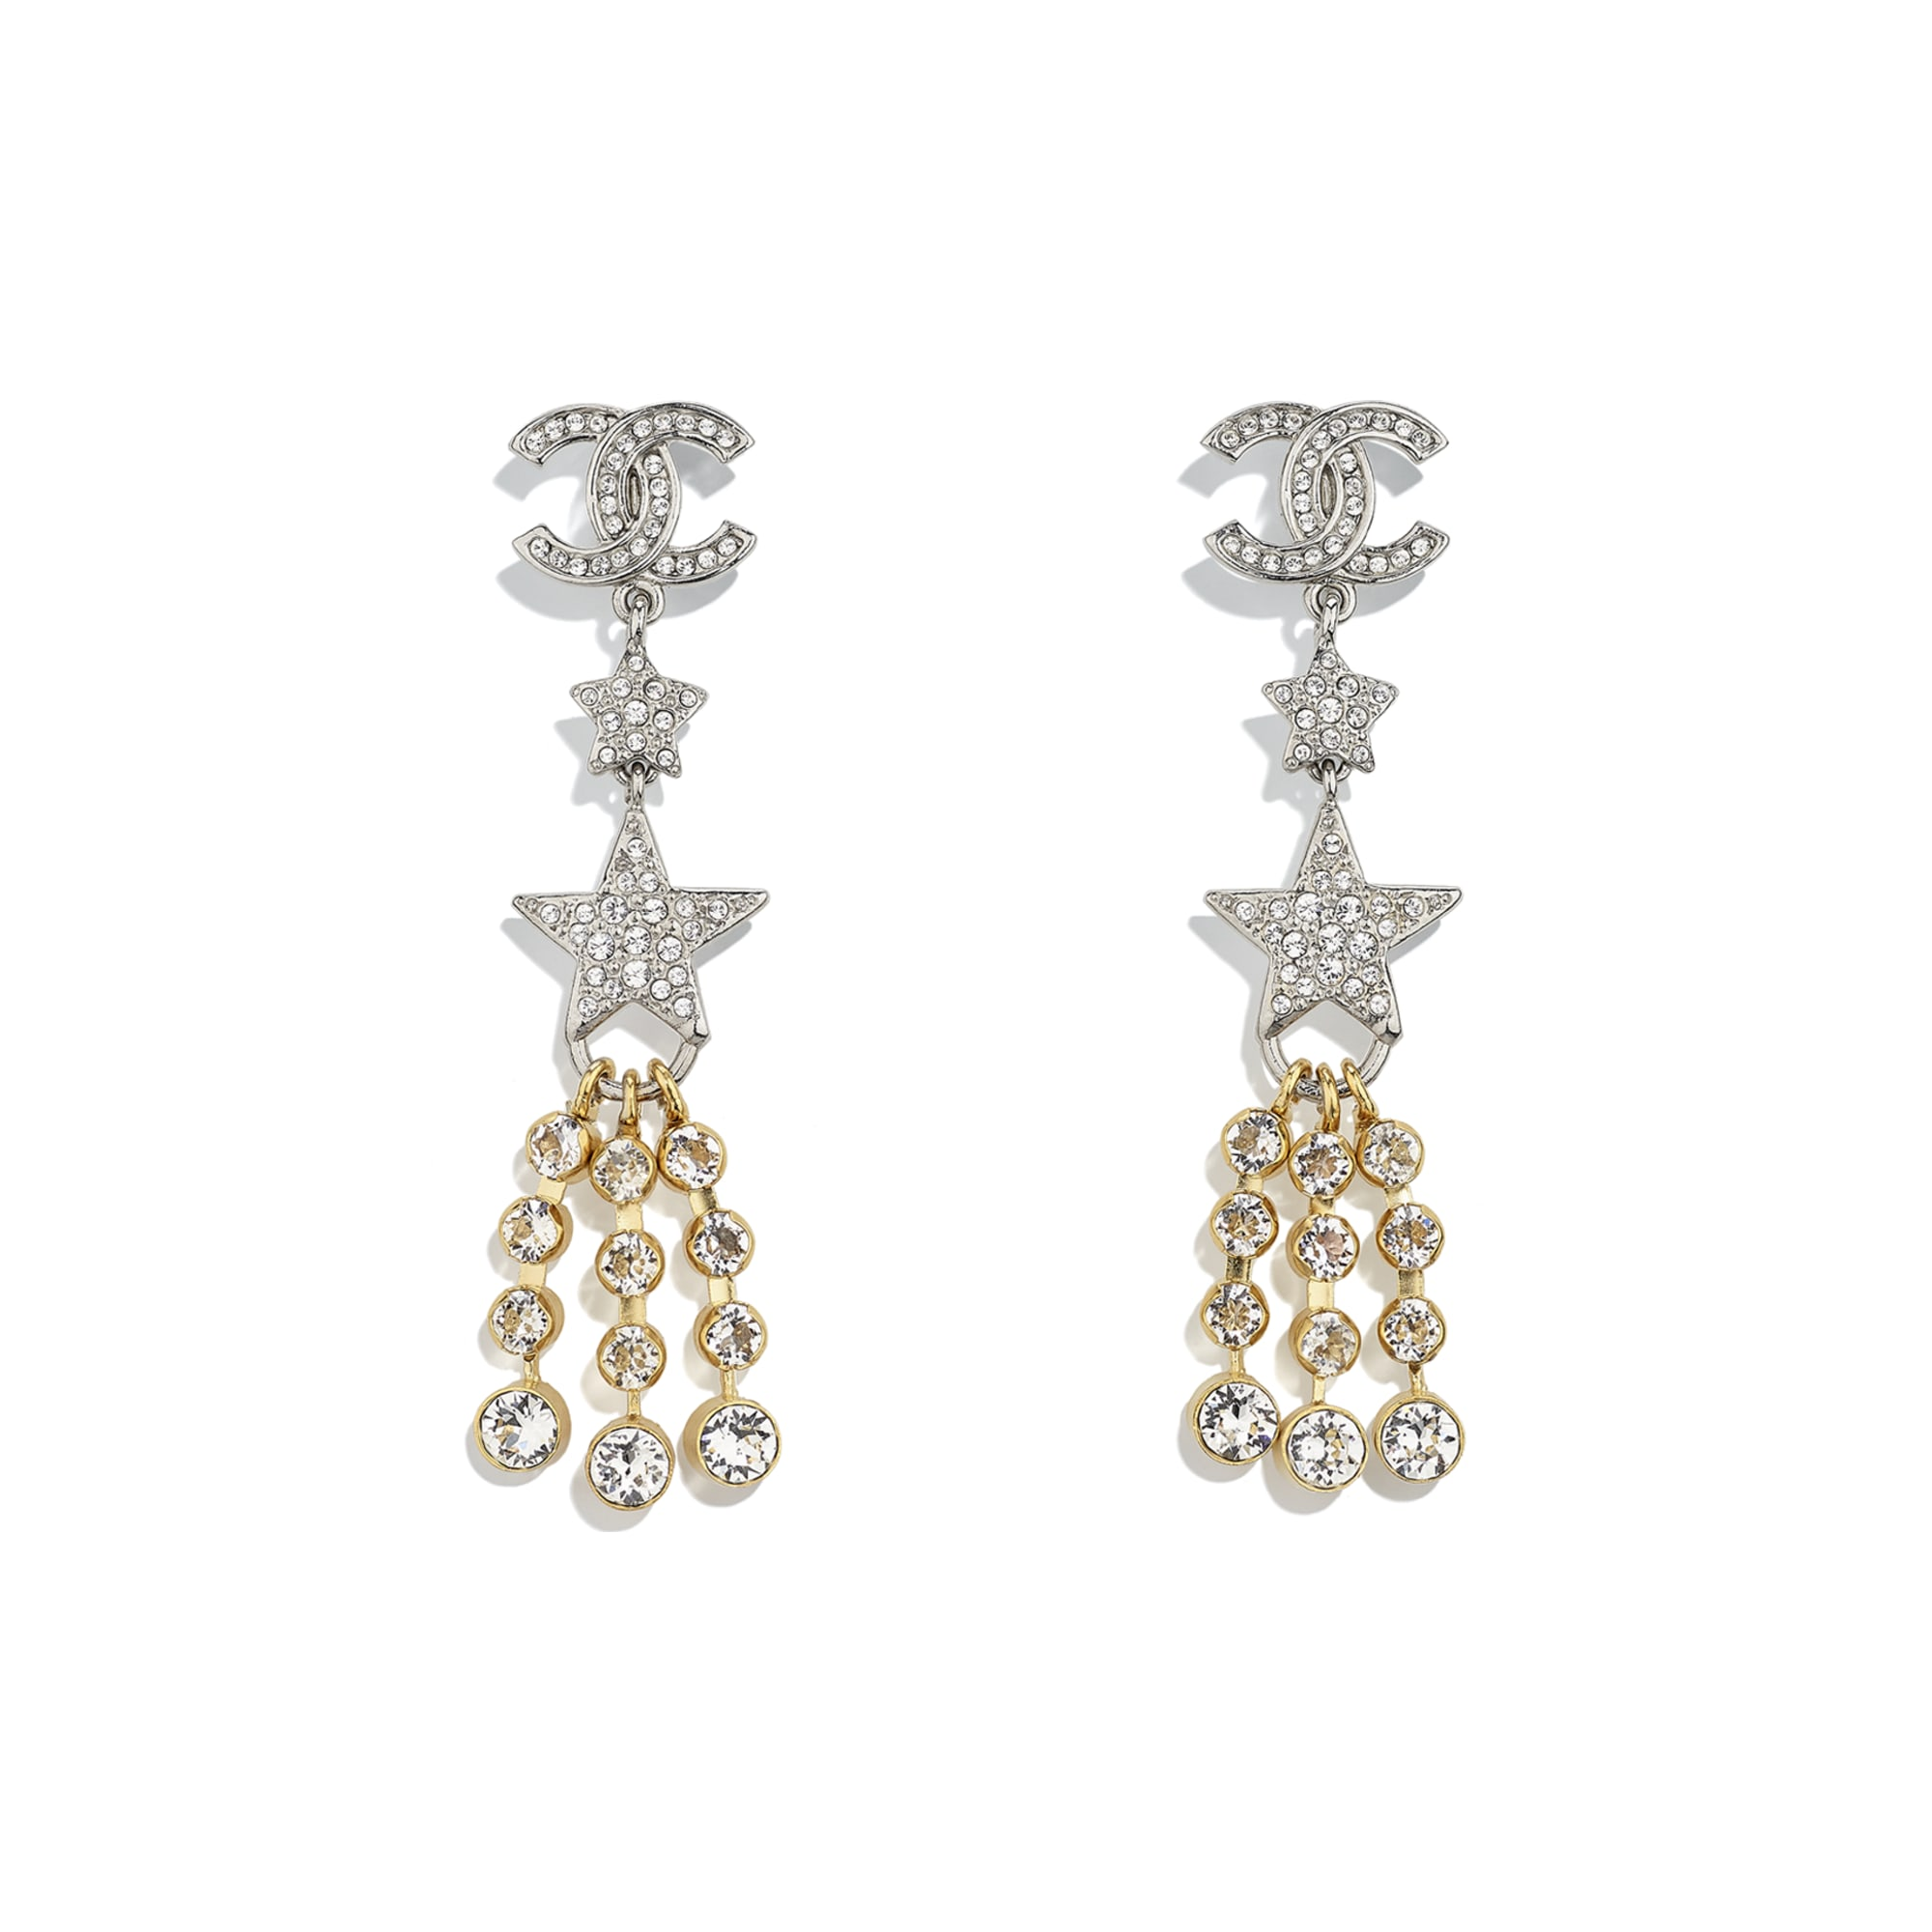 Clip-on Earrings - Gold, Silver & Crystal - Metal & Strass - CHANEL - Default view - see standard sized version